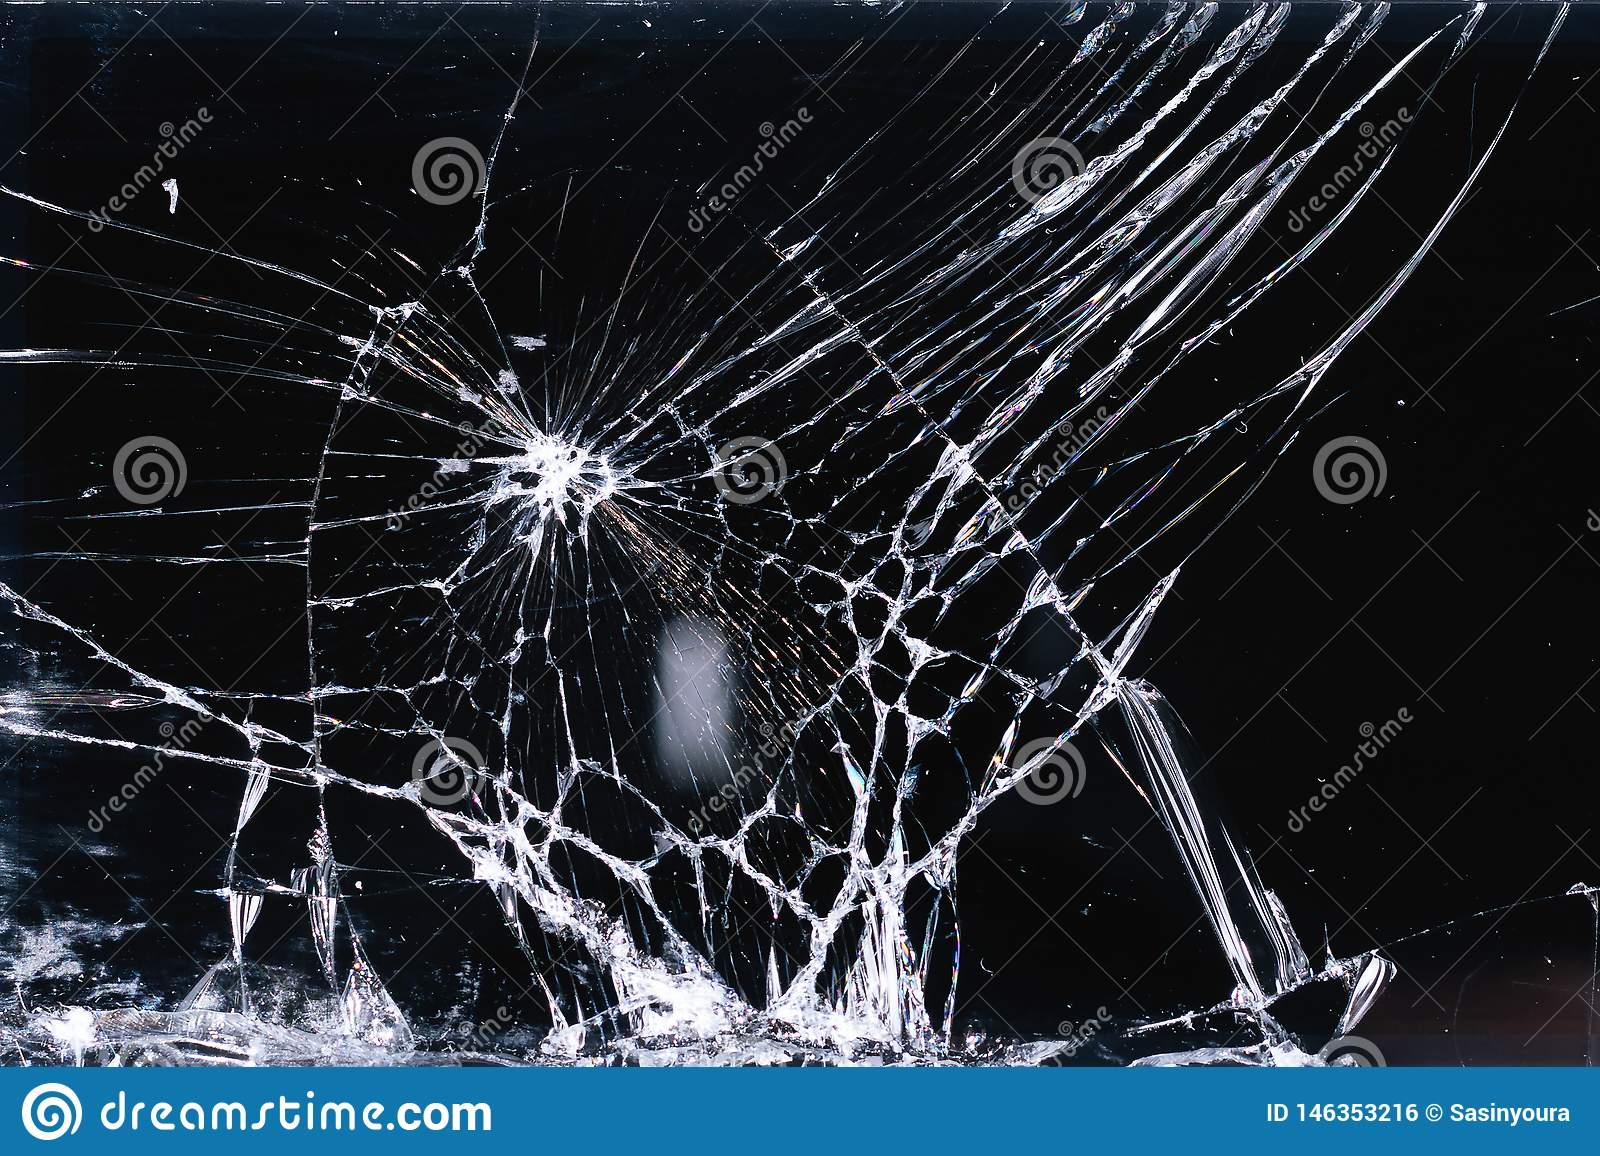 Broken and racked glass screen smartphone , white lines on black background, design element, backdrop texture